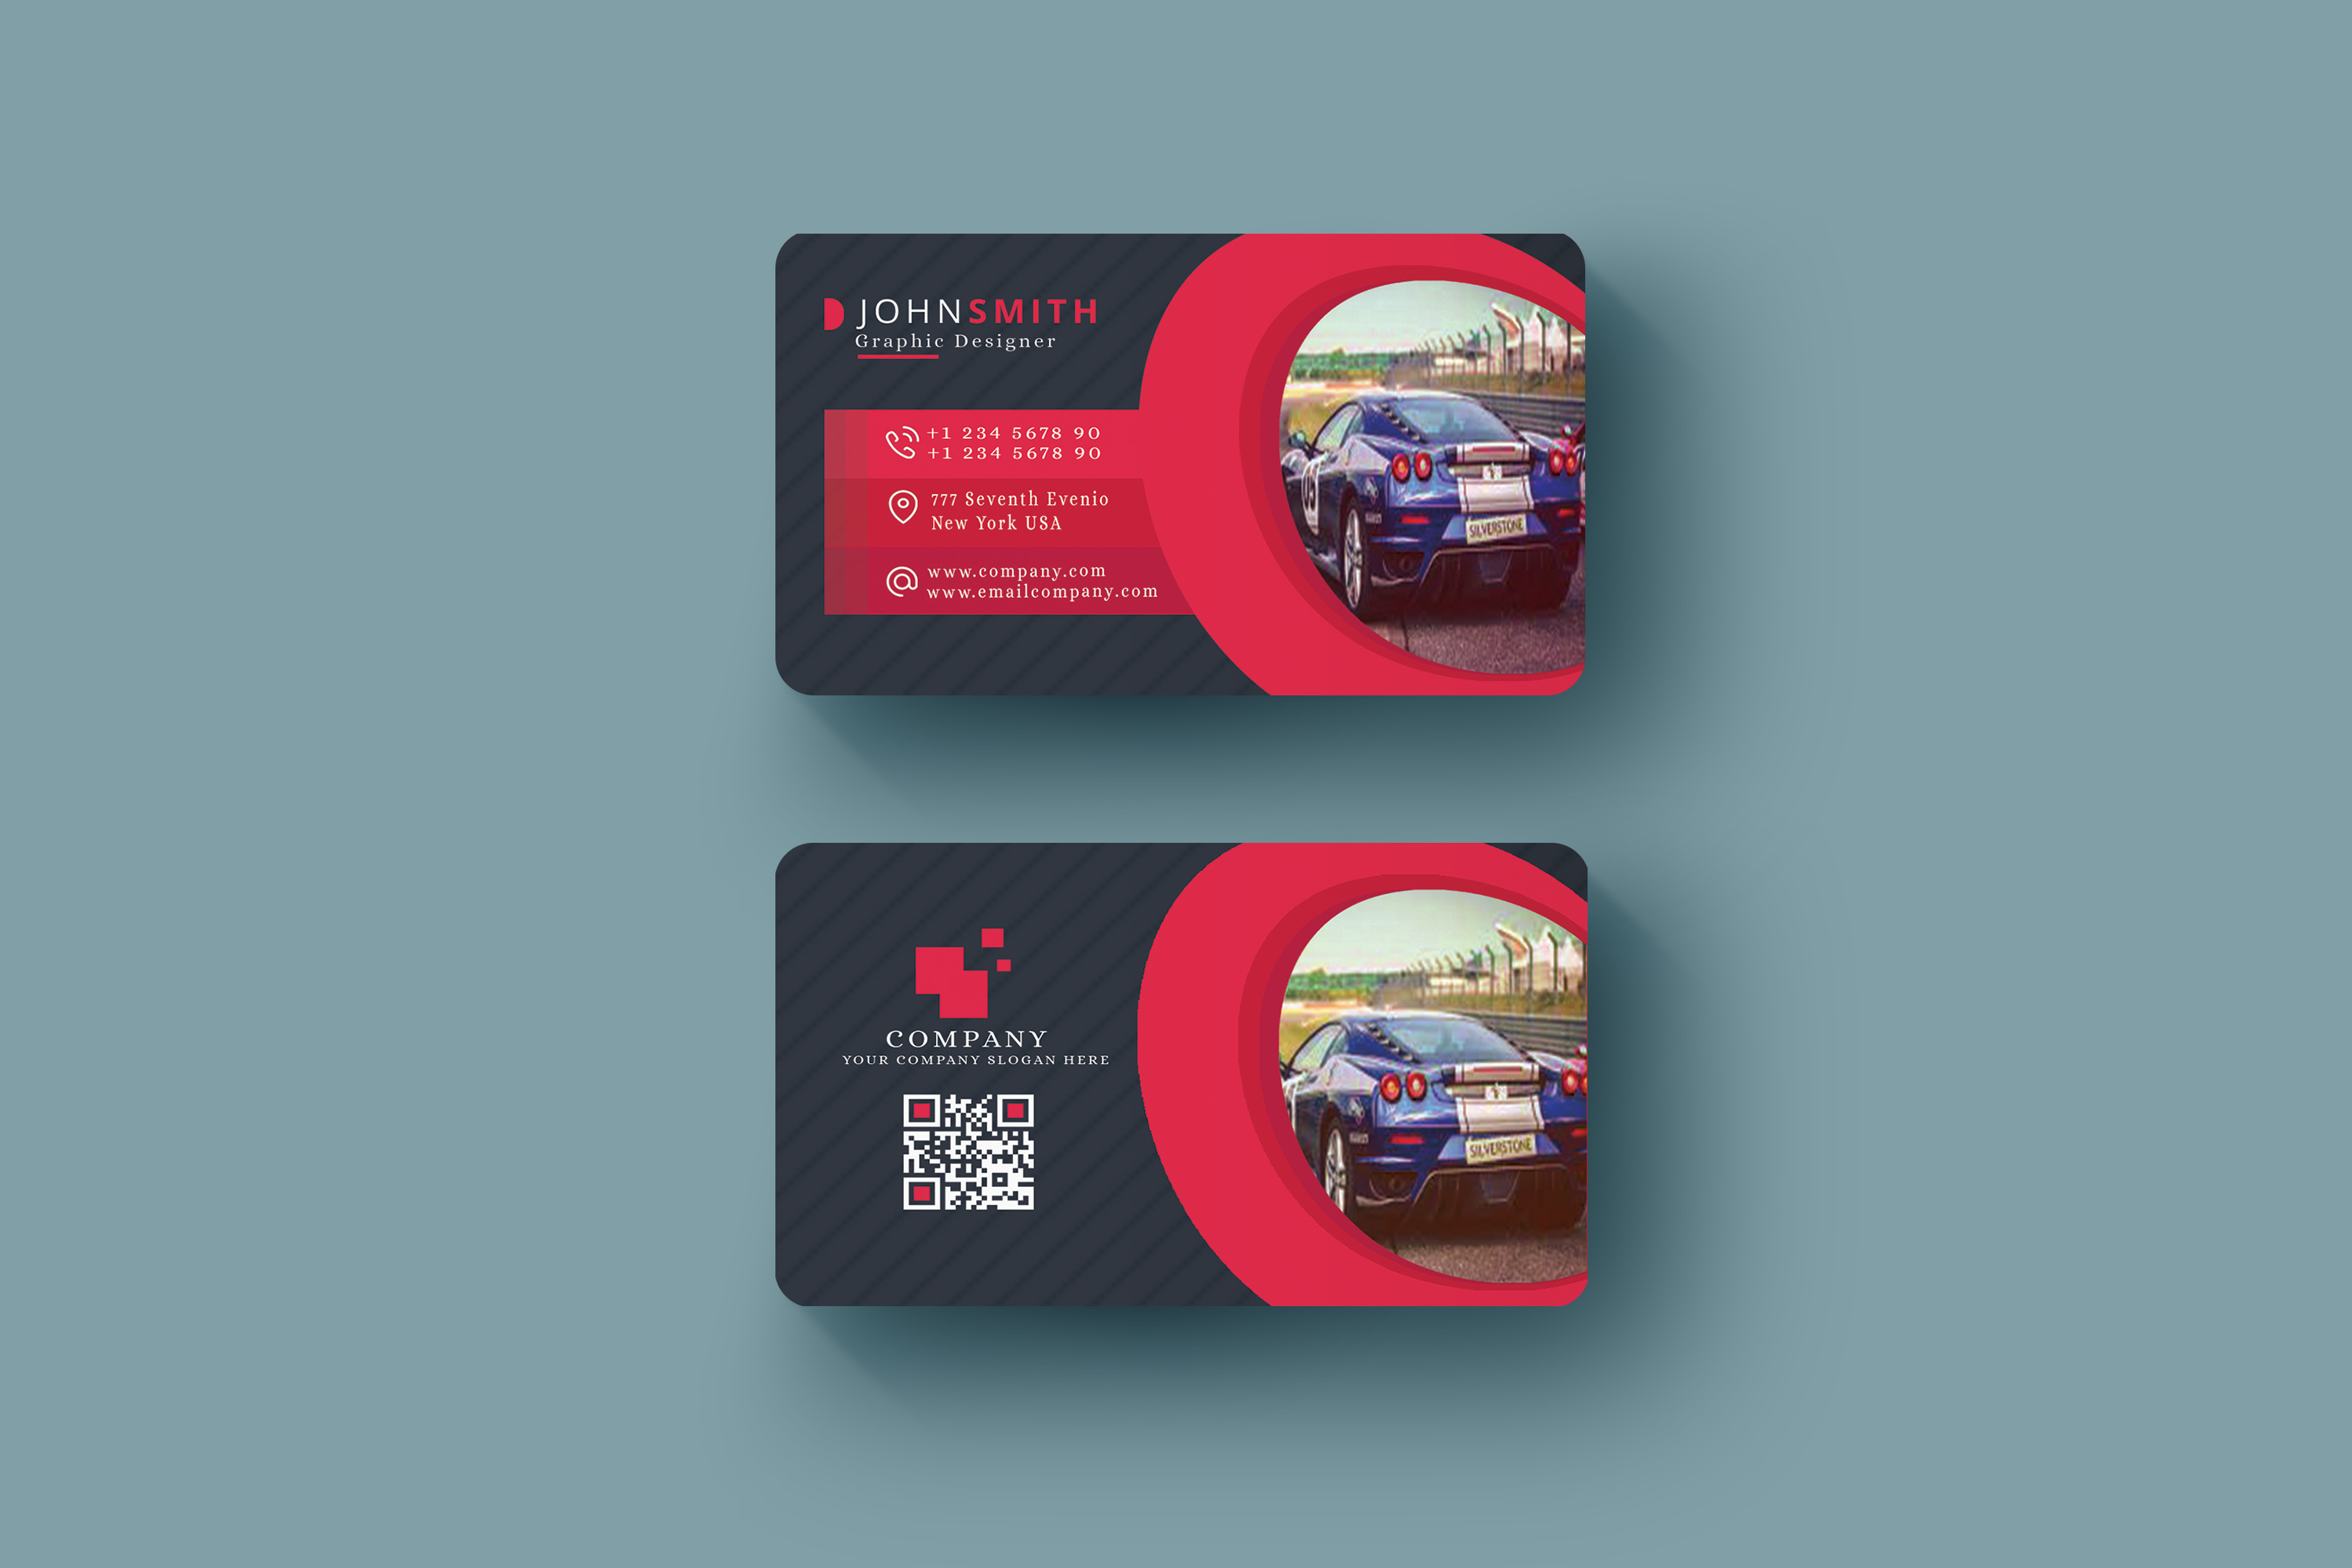 Abstract Business Card in Multicolor Design Template  example image 4